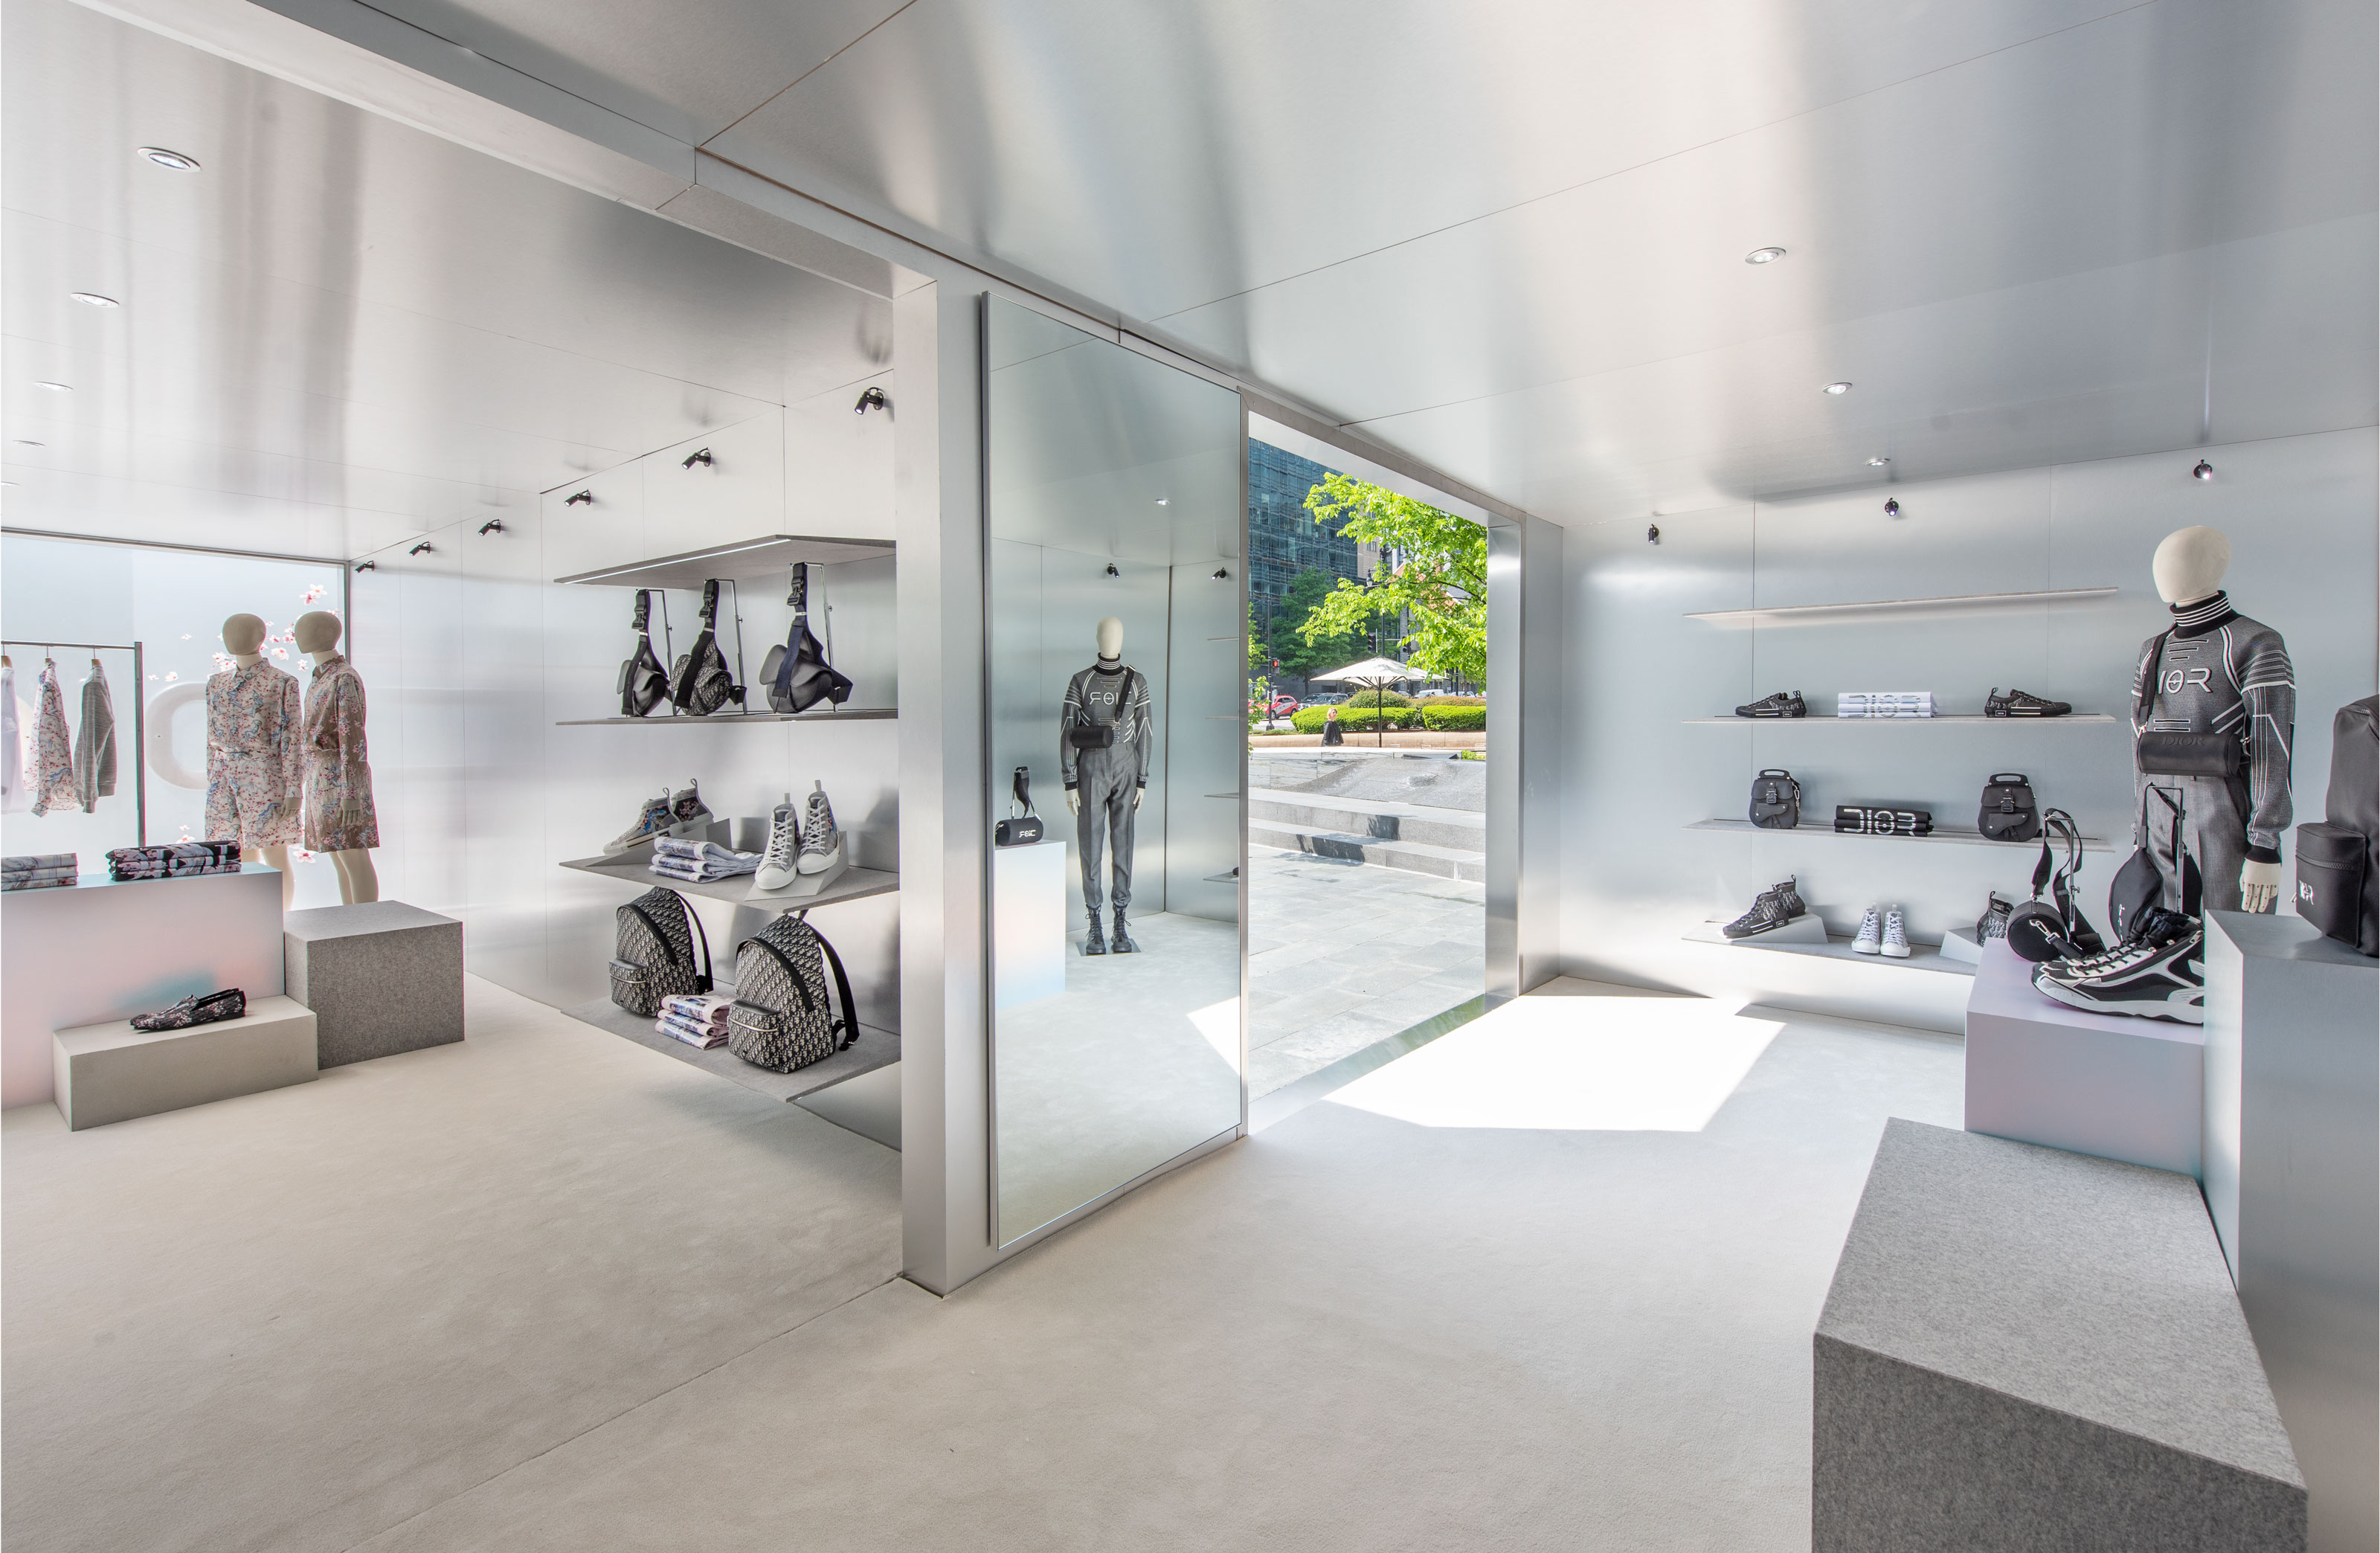 Dior Opens A Series of Pre-Fall 2019 Men's Collection Pop-Ups